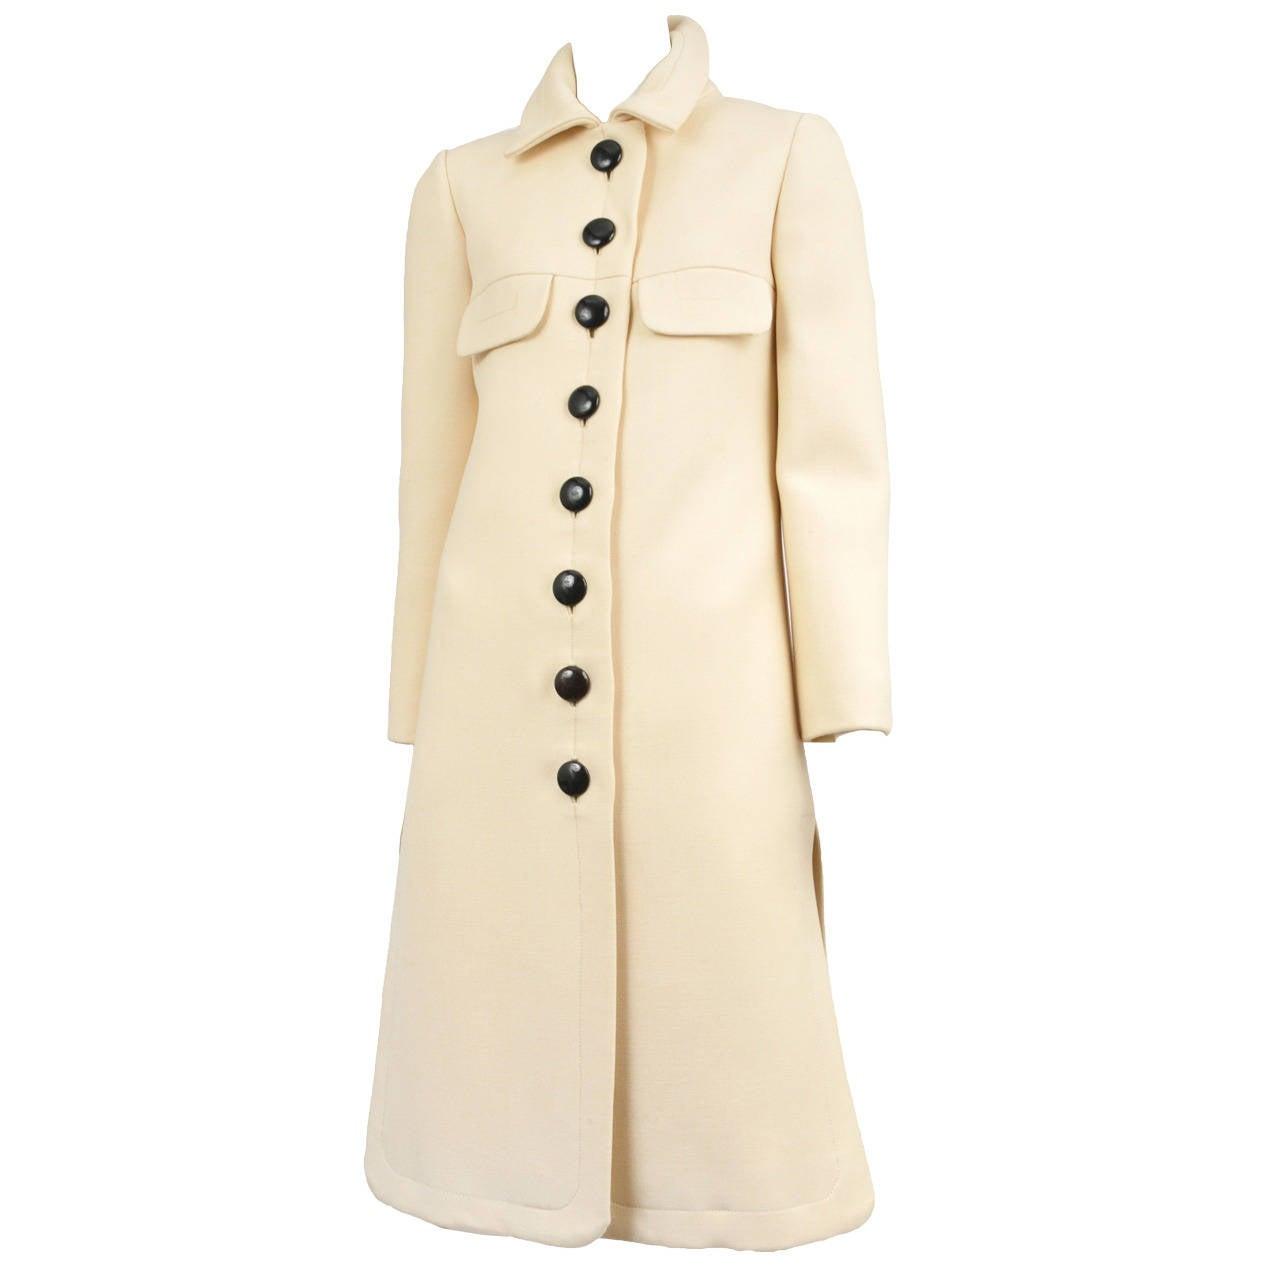 Shop for Cecil Gee Women's Cream Wool Blend Walking Coat. Get free delivery at fabulousdown4allb7.cf - Your Online Women's Clothing Destination! Get 5% in rewards with Club O! -